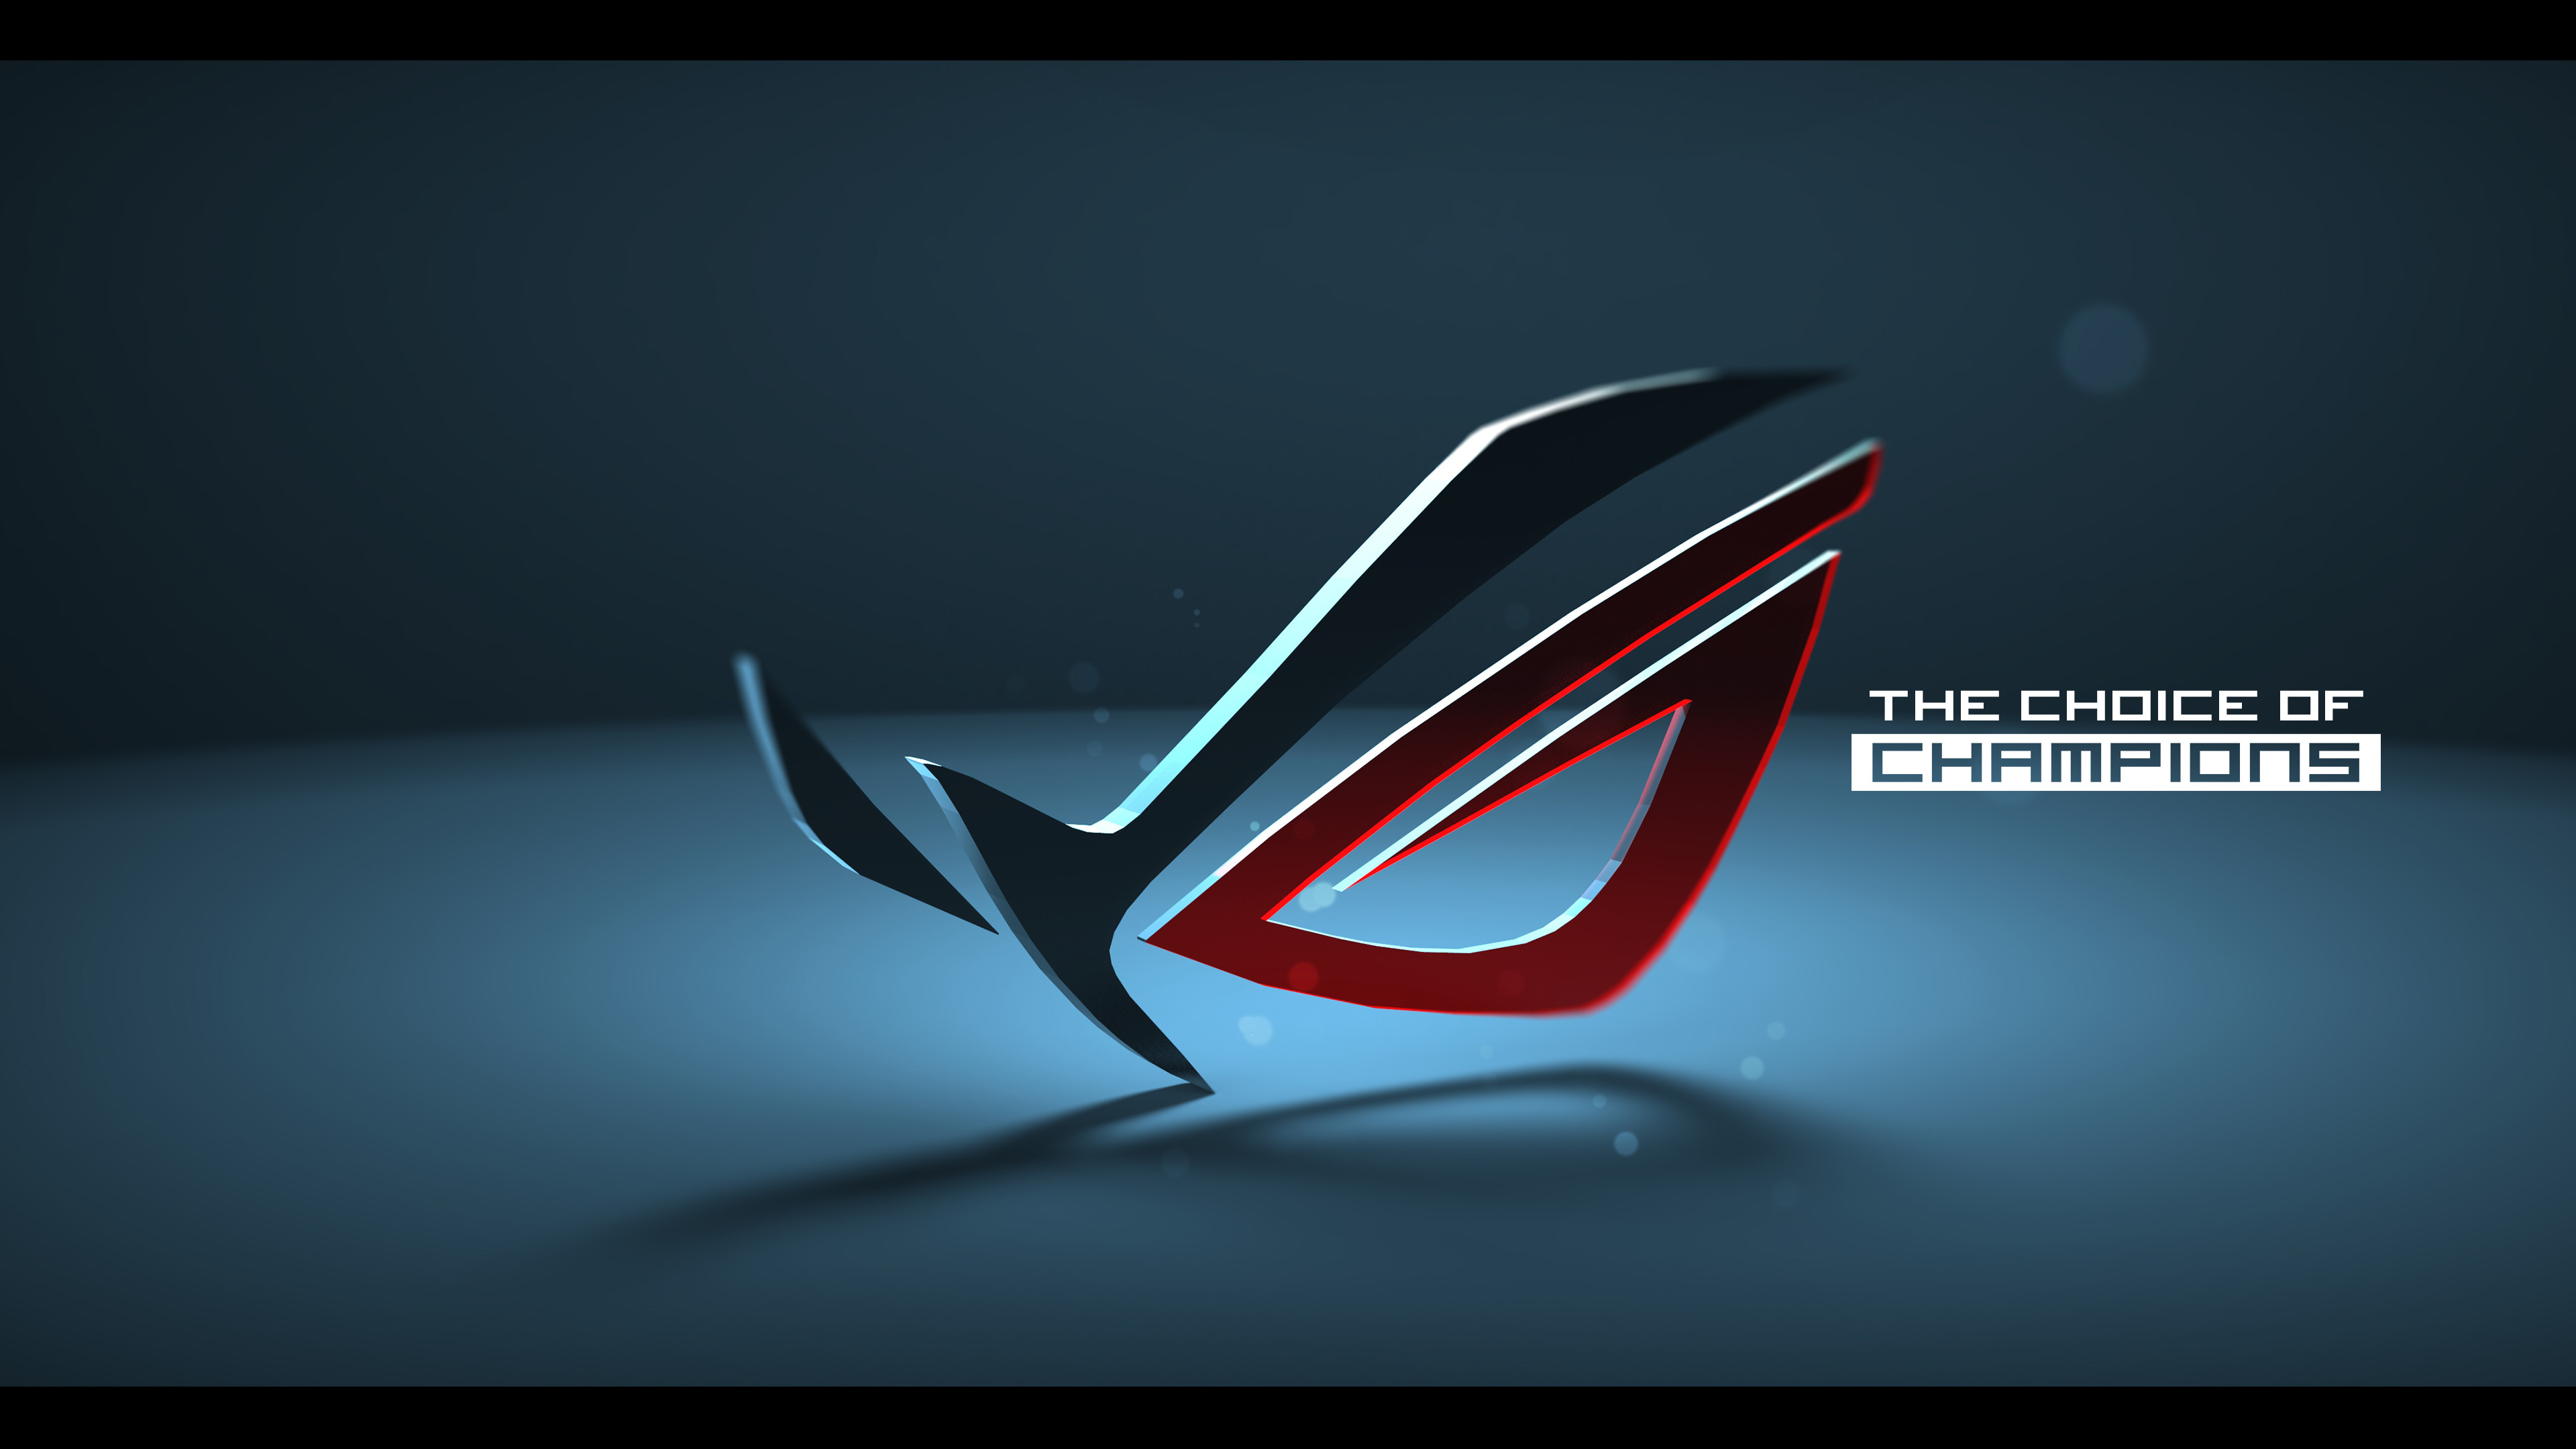 Asus rog 4k wallpaper 74 images - Asus x series wallpaper hd ...